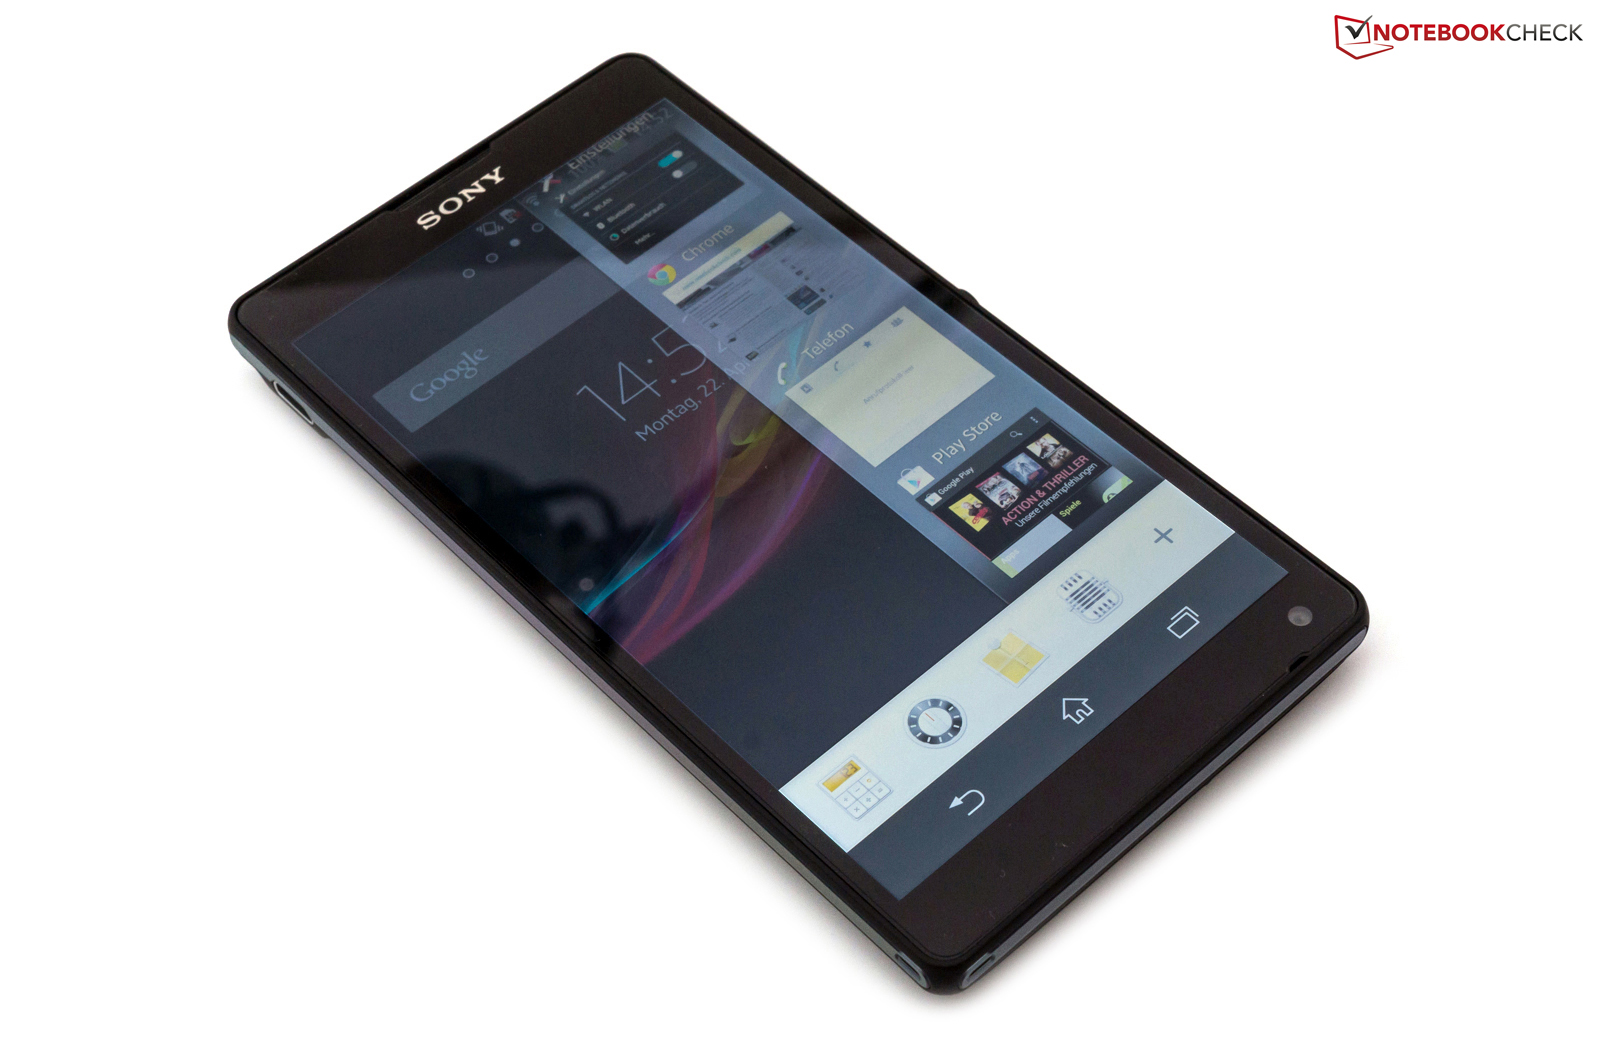 Review Sony Xperia Zl Smartphone Reviews Nokia Asha 310 Dual Sim Resmi White We Liked The Widgets In Multi Tasking Menu A Lot